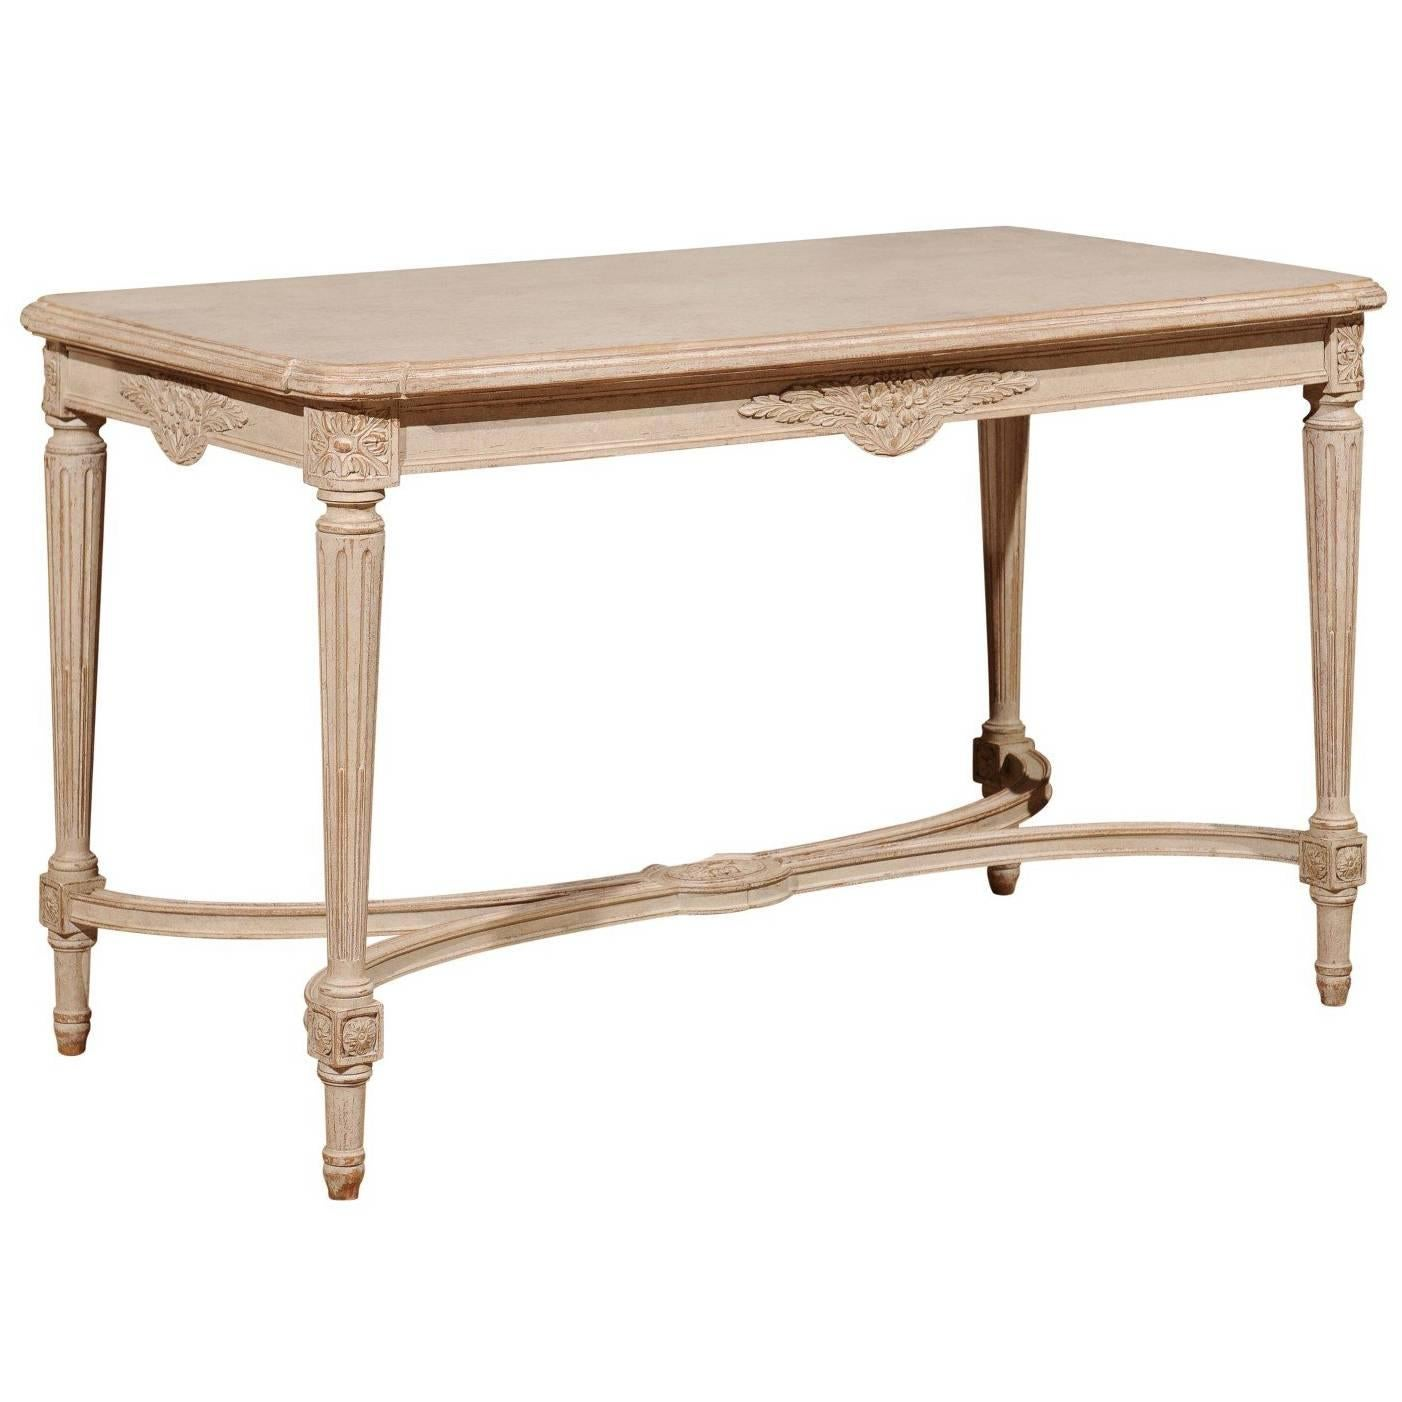 Swedish Gustavian Style Painted Wood Coffee Table With Fluted Legs, Circa  1920 For Sale